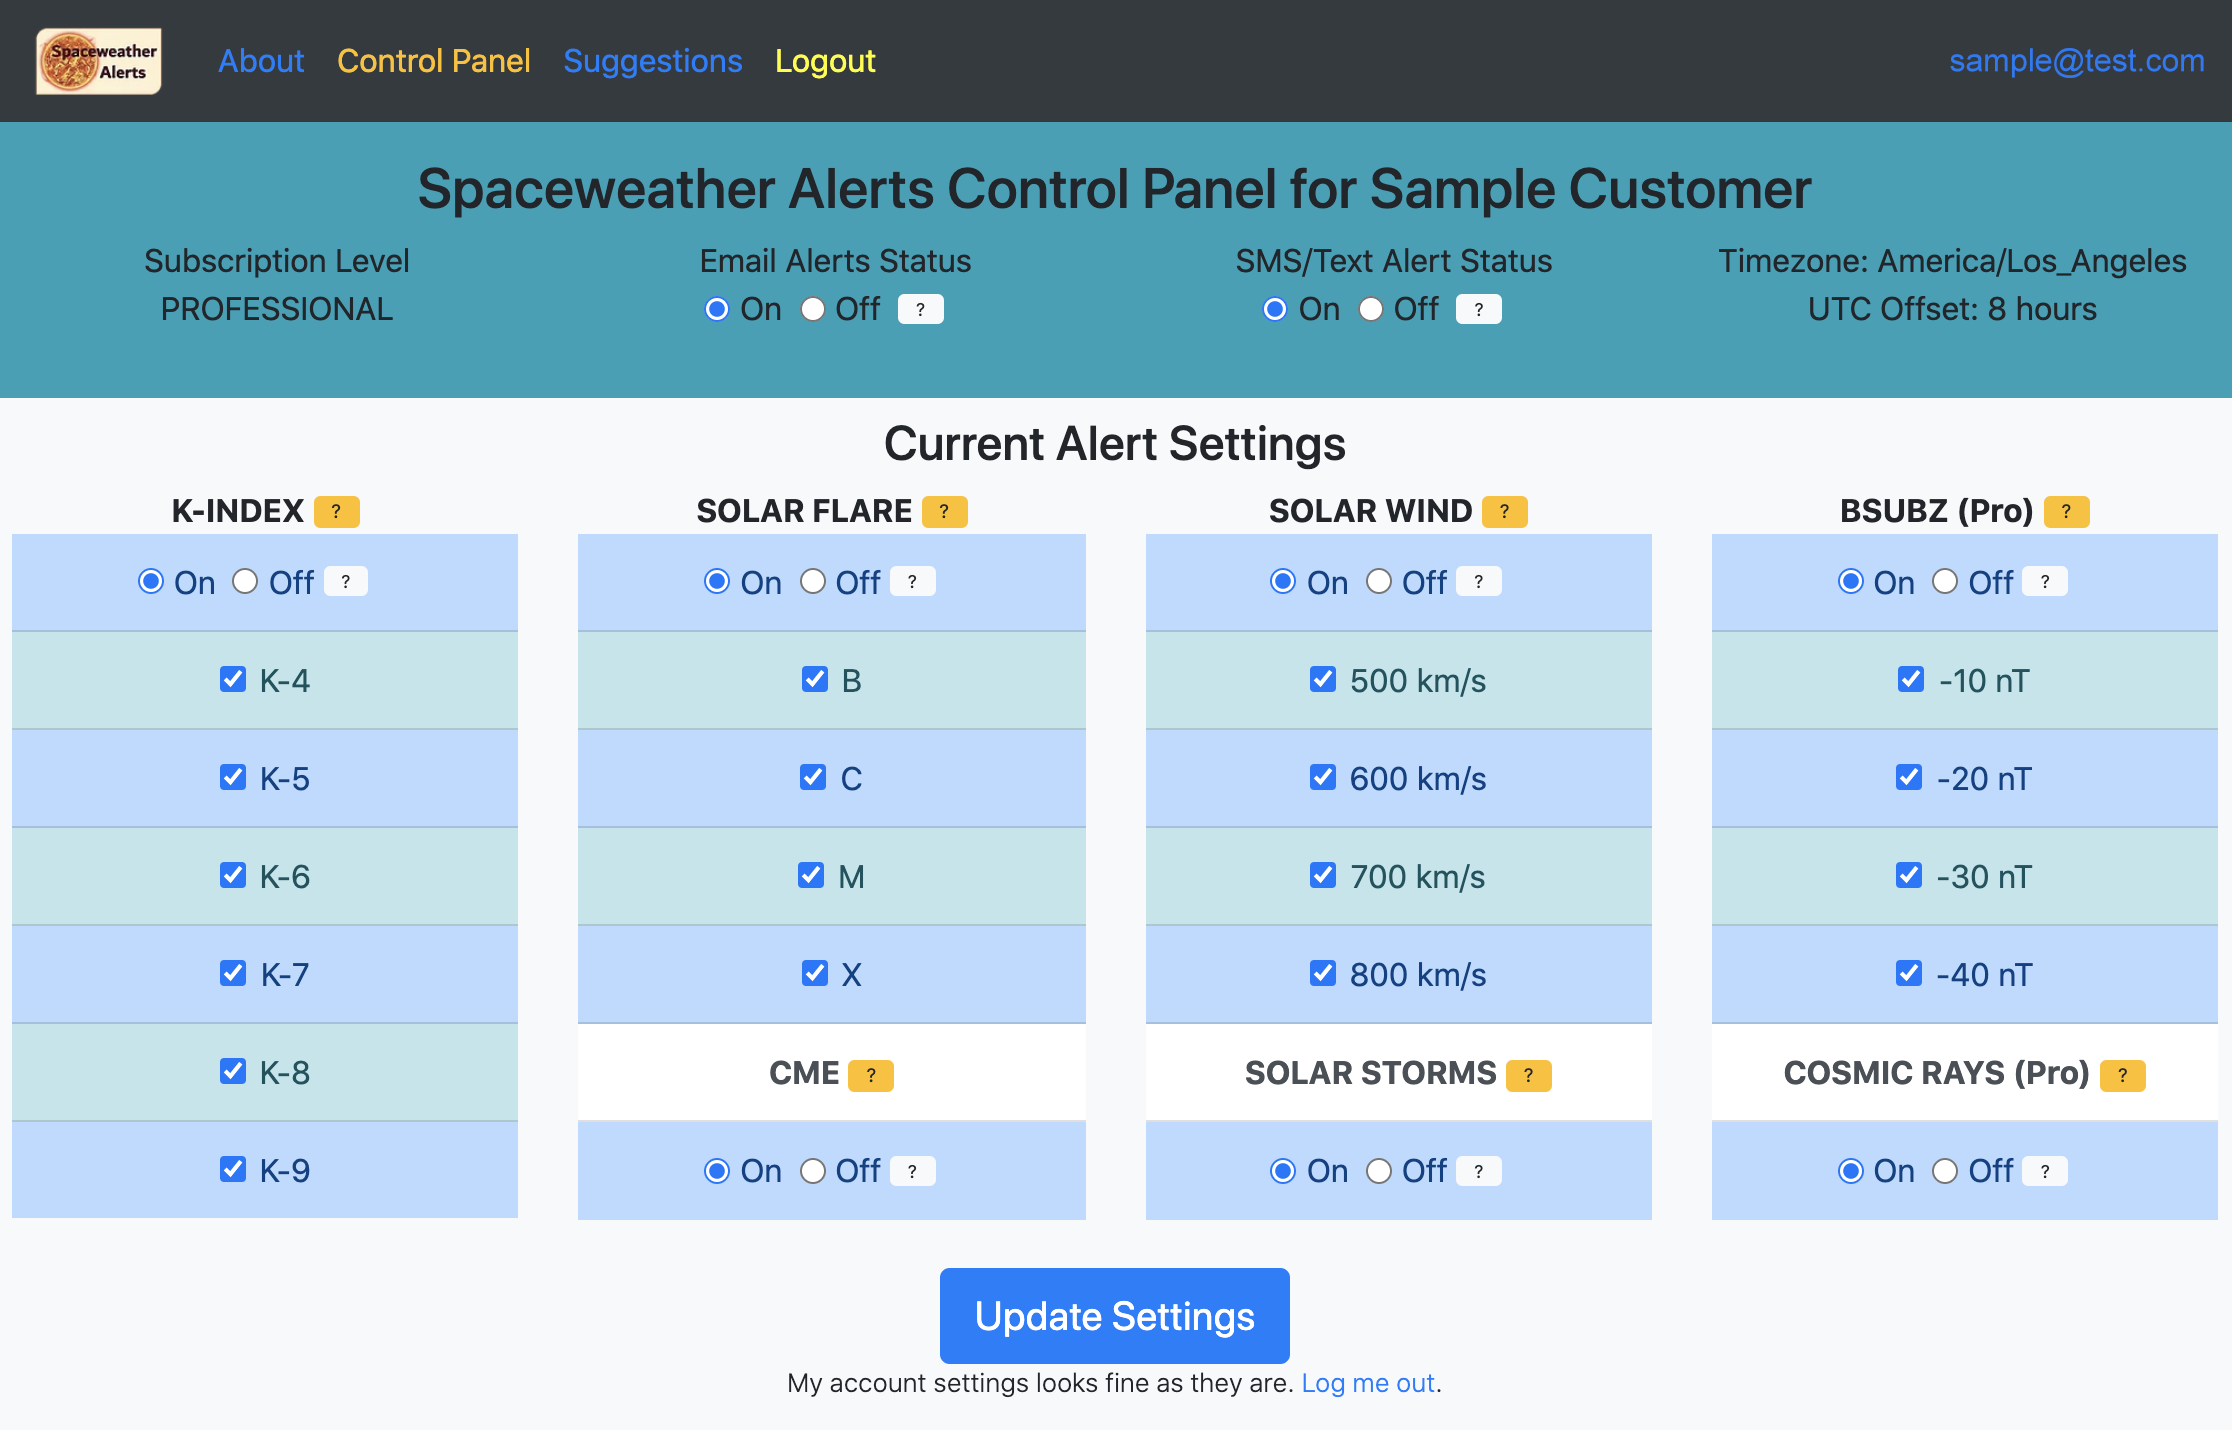 Pro Plan sample customer control panel